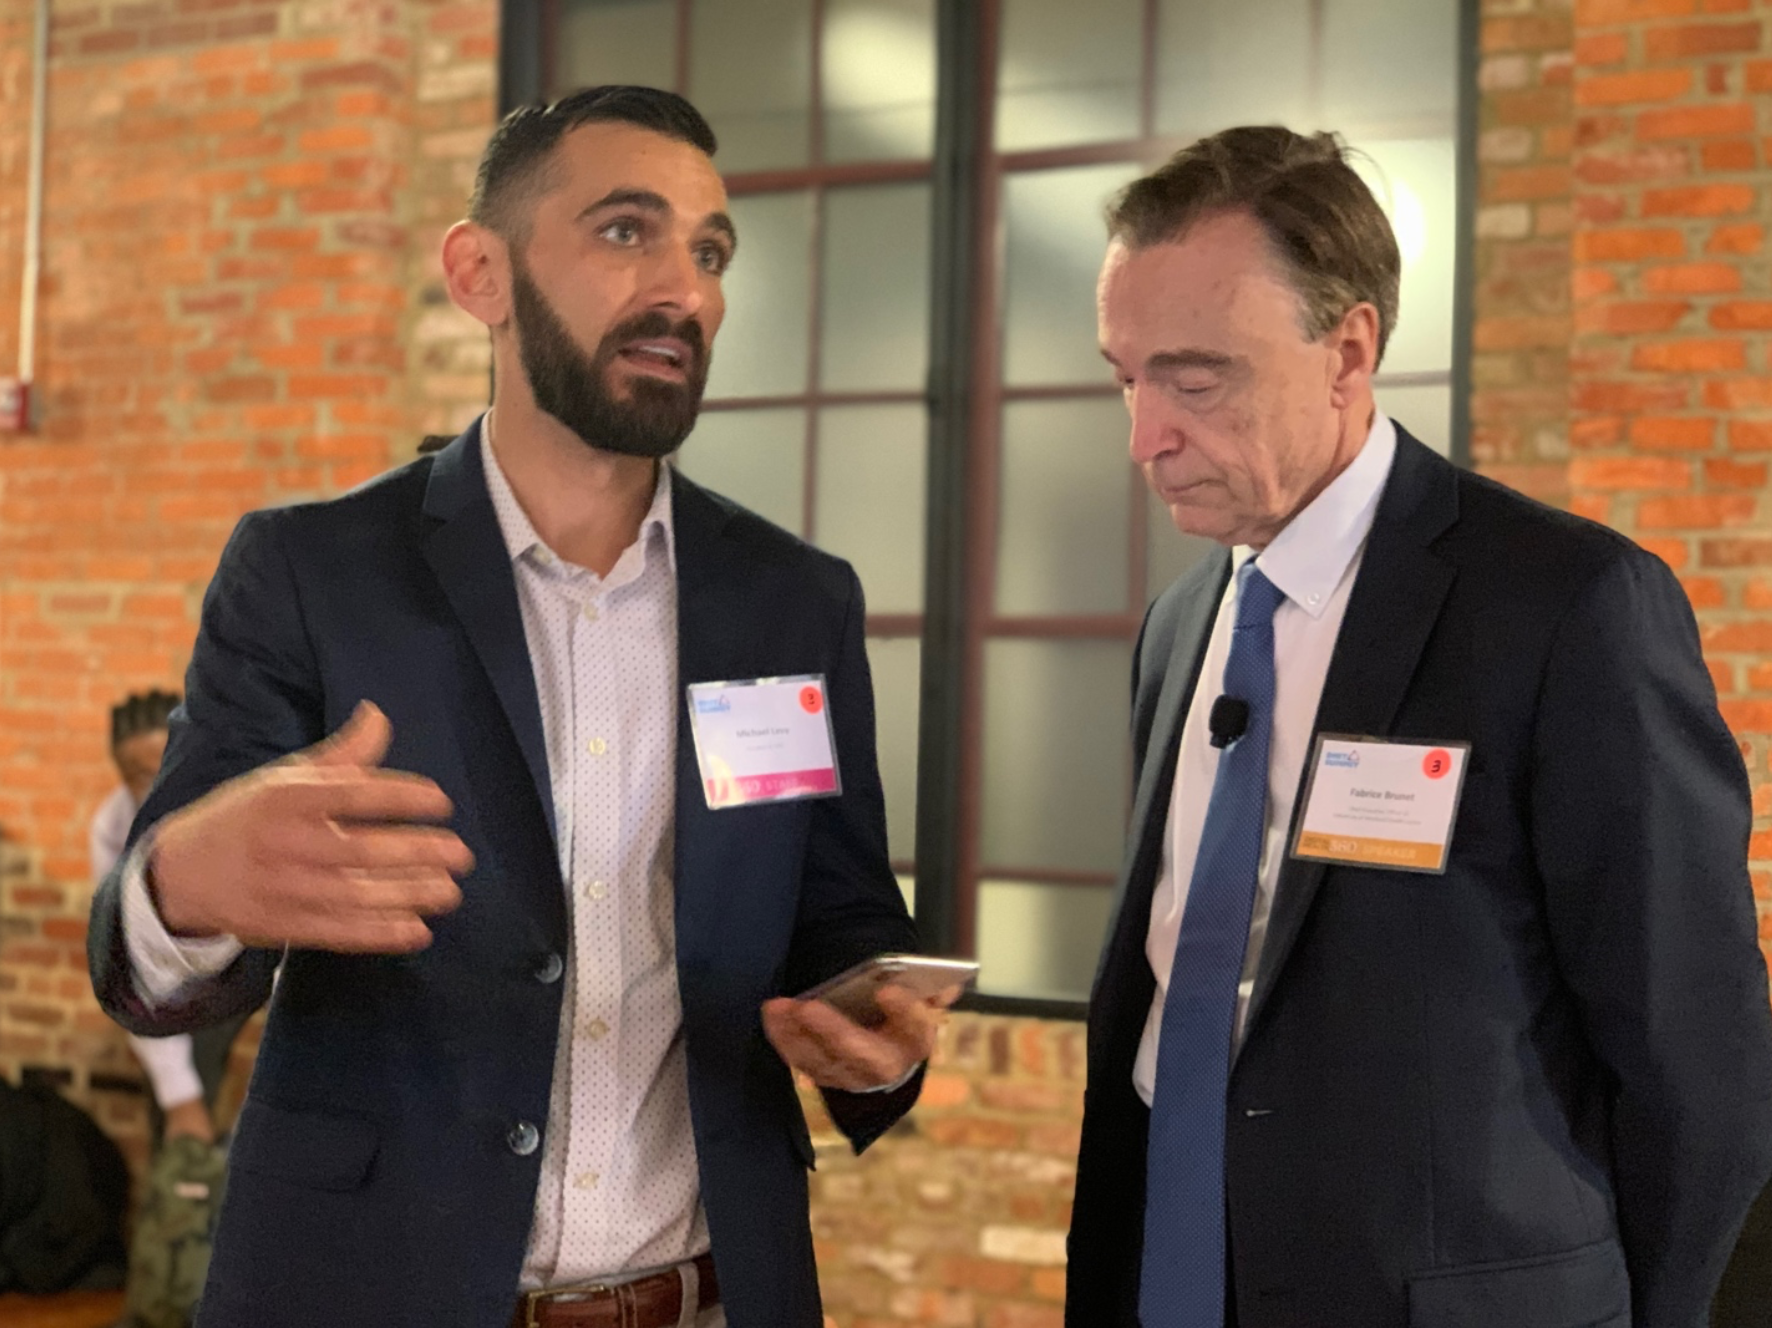 DHIT President Michael Levy with keynote speaker Dr. Fabrice Brunet, President and CEO of University of Montreal Health Centre